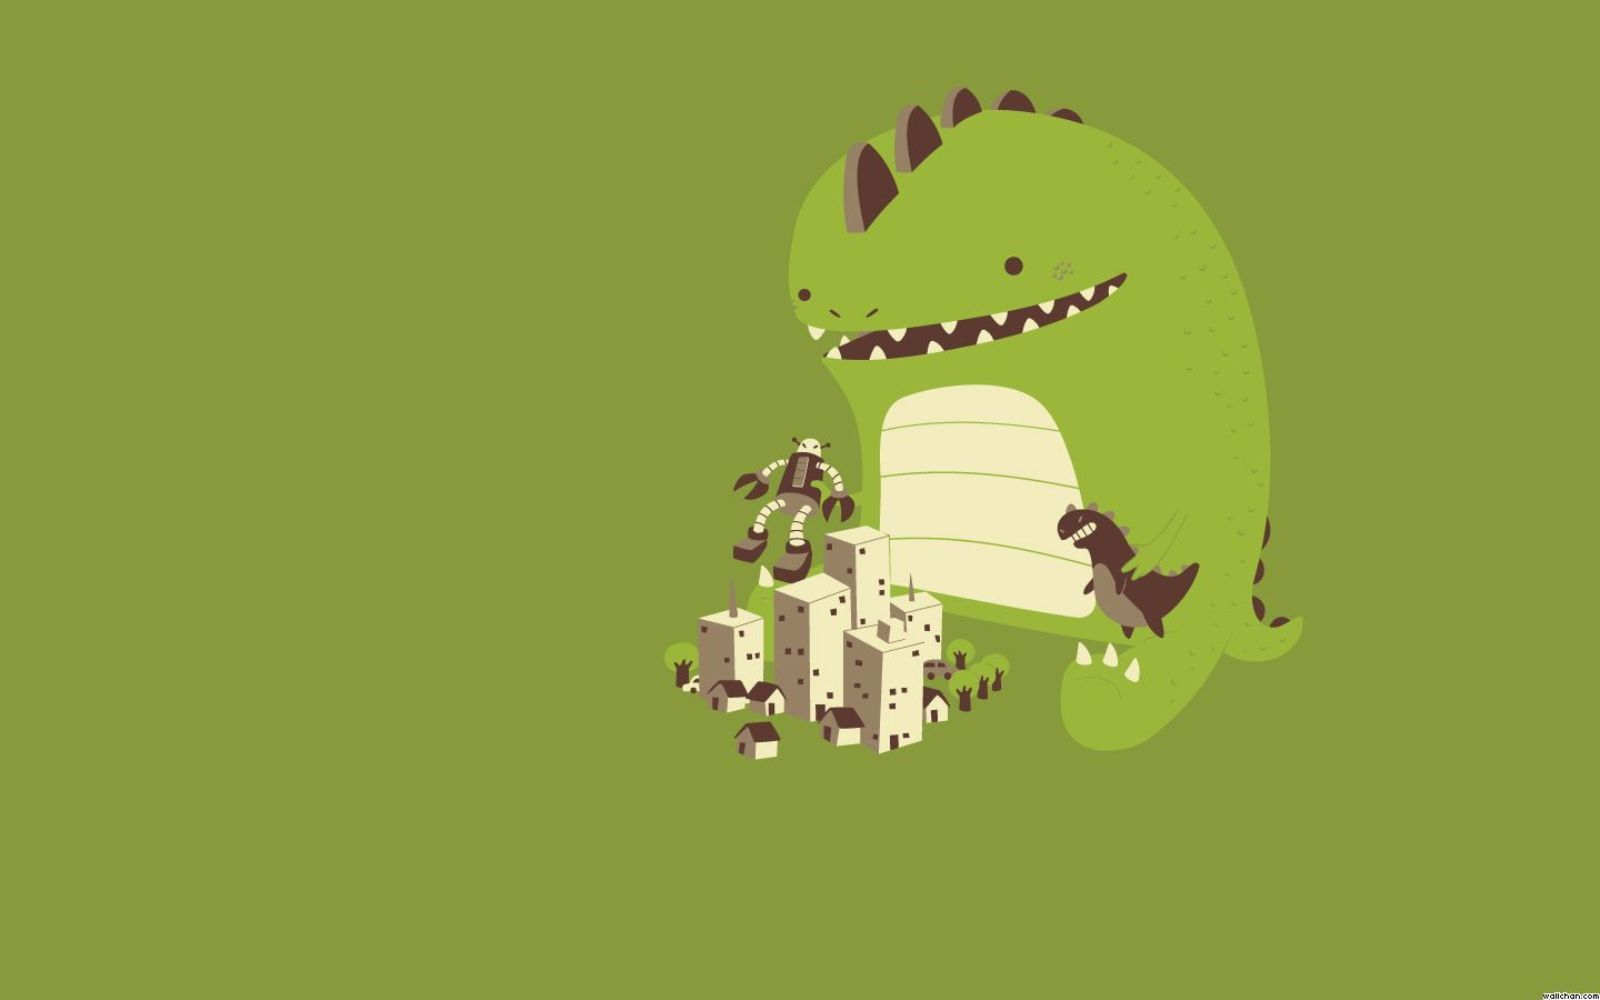 Cute Dinosaur Backgrounds Building Toy Dinosaur Cute Backgrounds 1600x1000